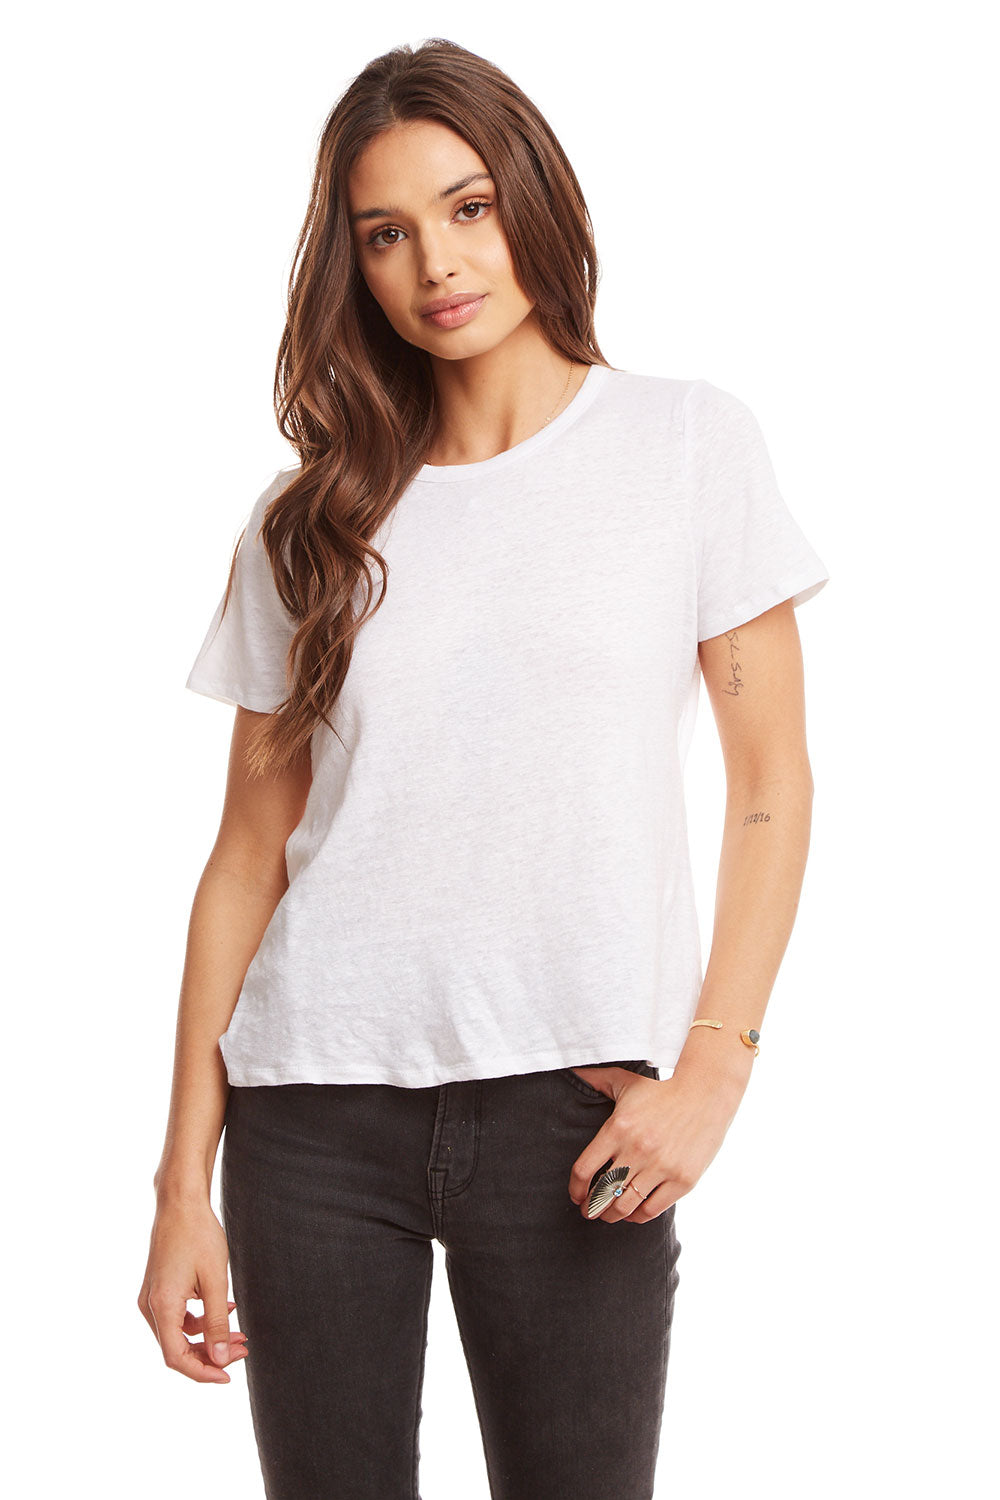 Linen Jersey Cropped S/S Open Tie Back Tee WOMENS chaserbrand4.myshopify.com